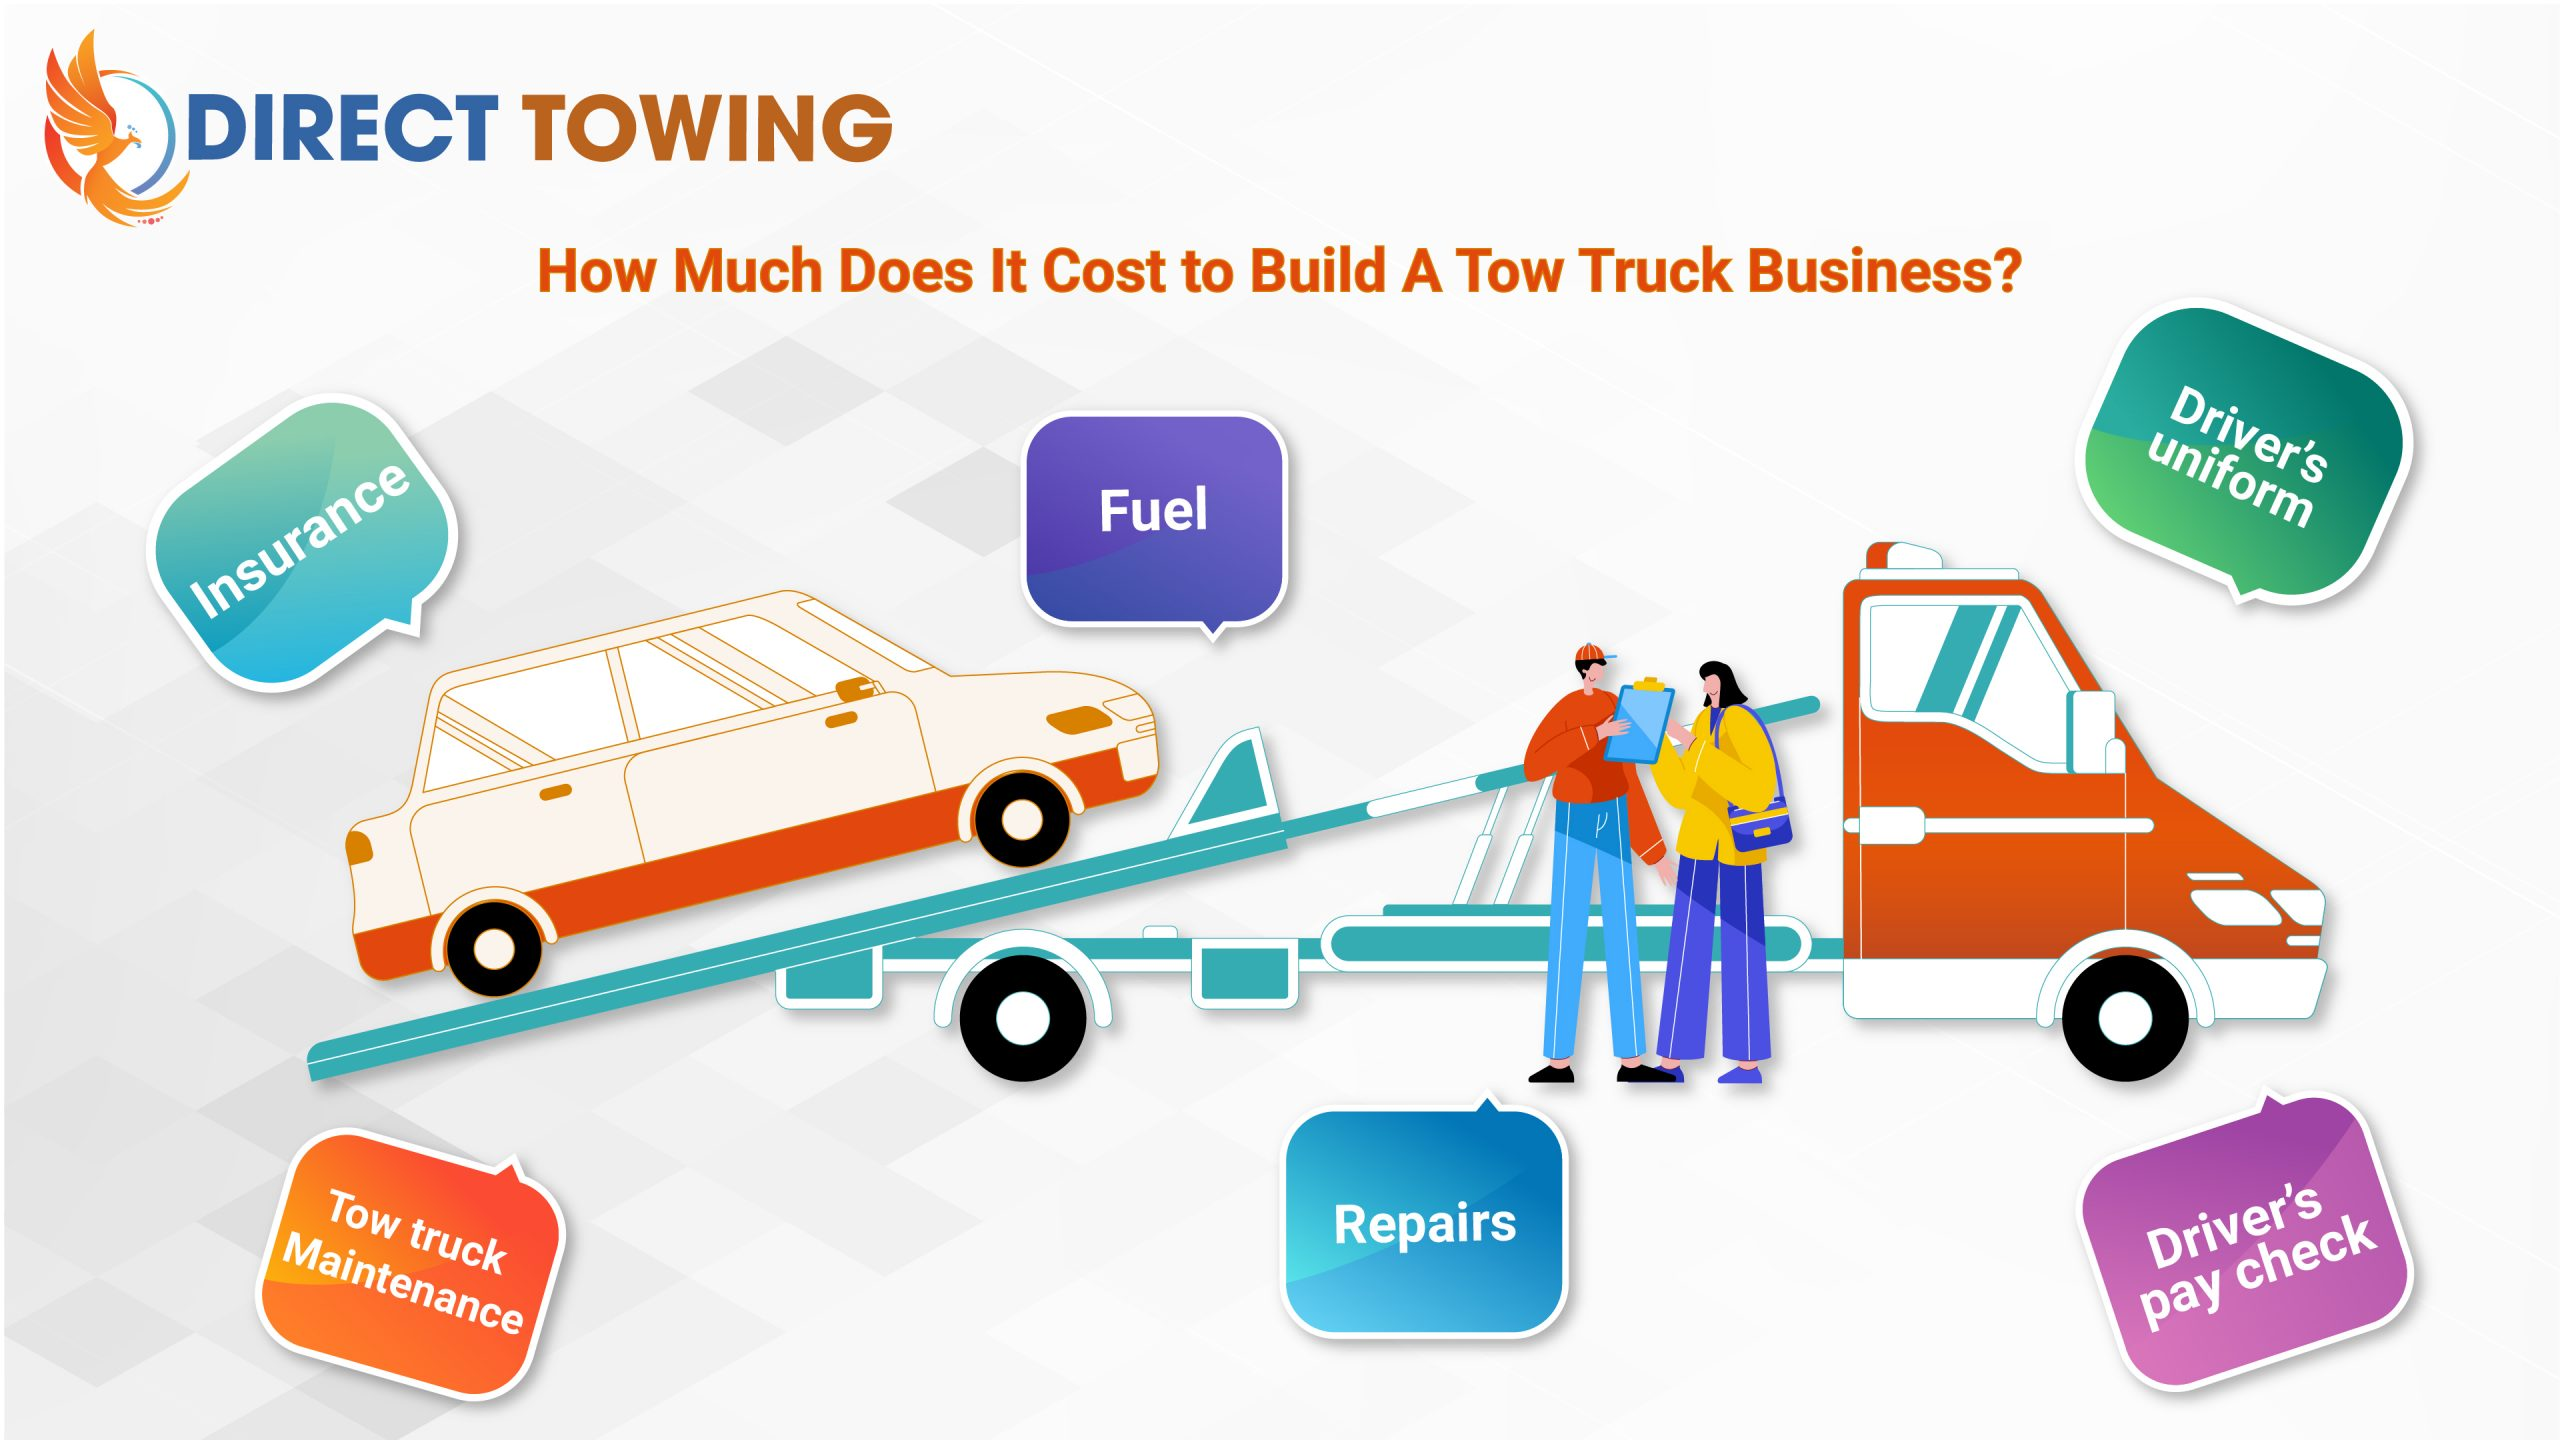 How Much Does It Cost to Build A Tow Truck Business?